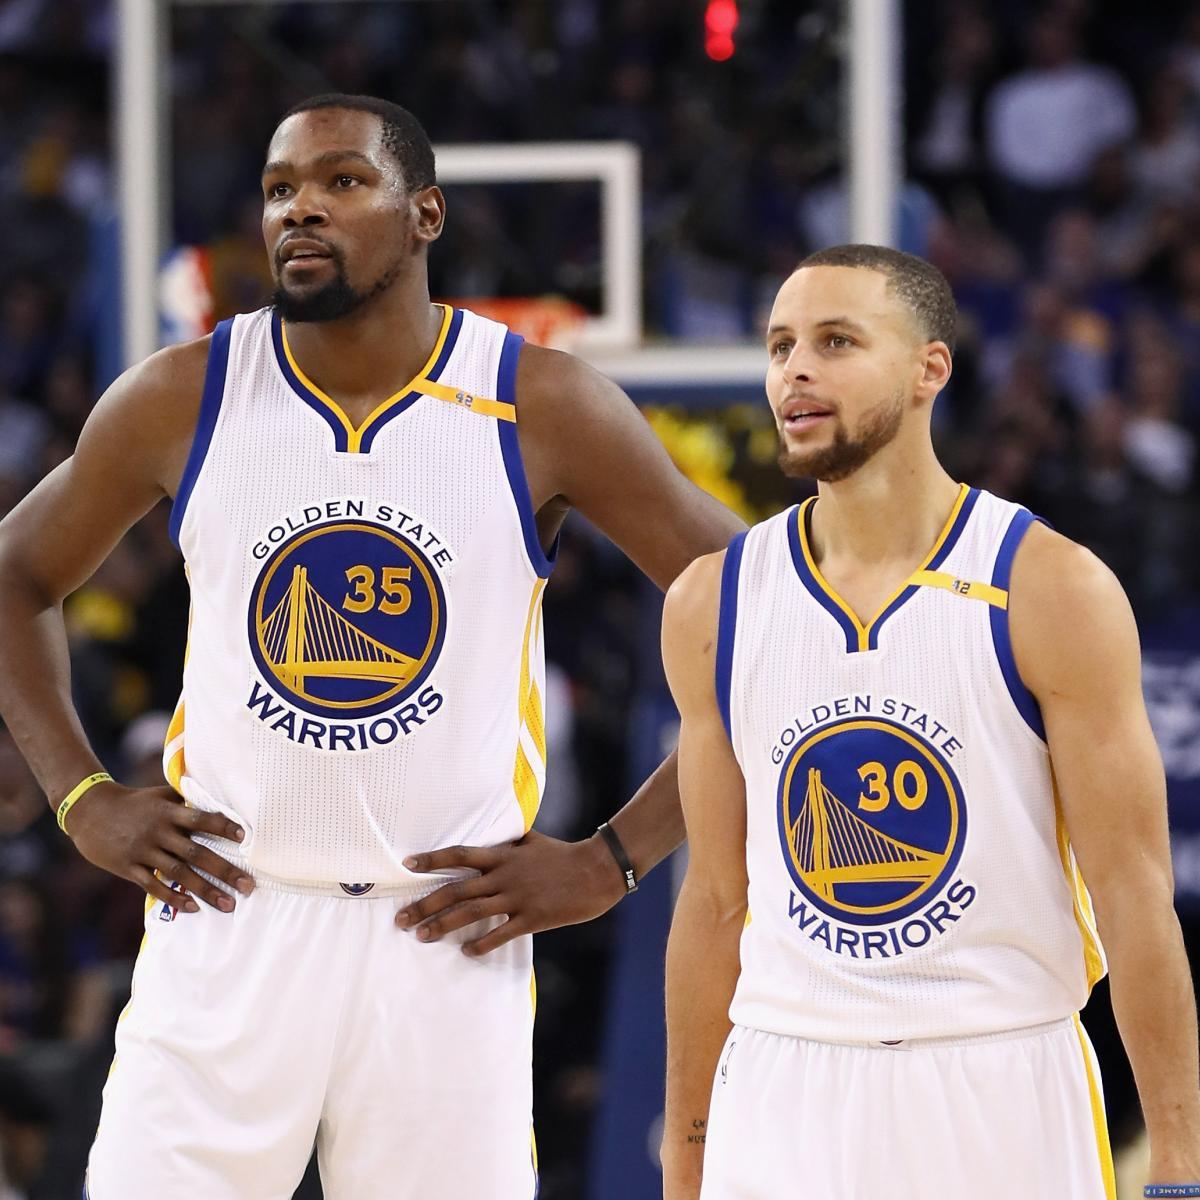 Cleveland Cavaliers Vs. Golden State Warriors Betting Odds